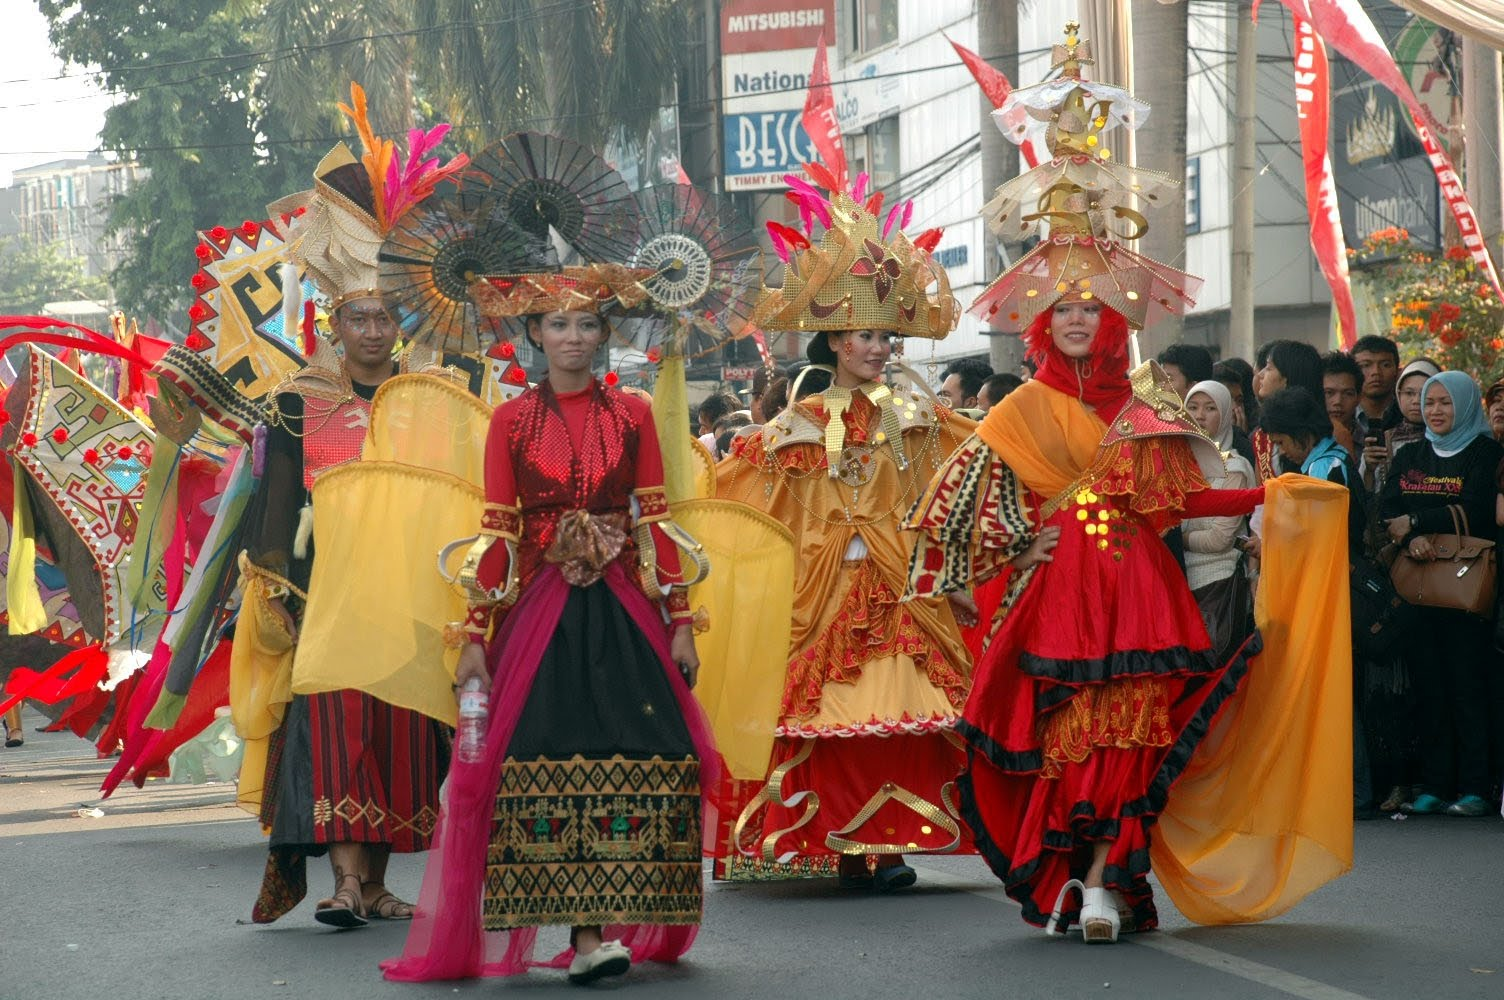 Lampung Krakatau Festival Will be Held in August 2014